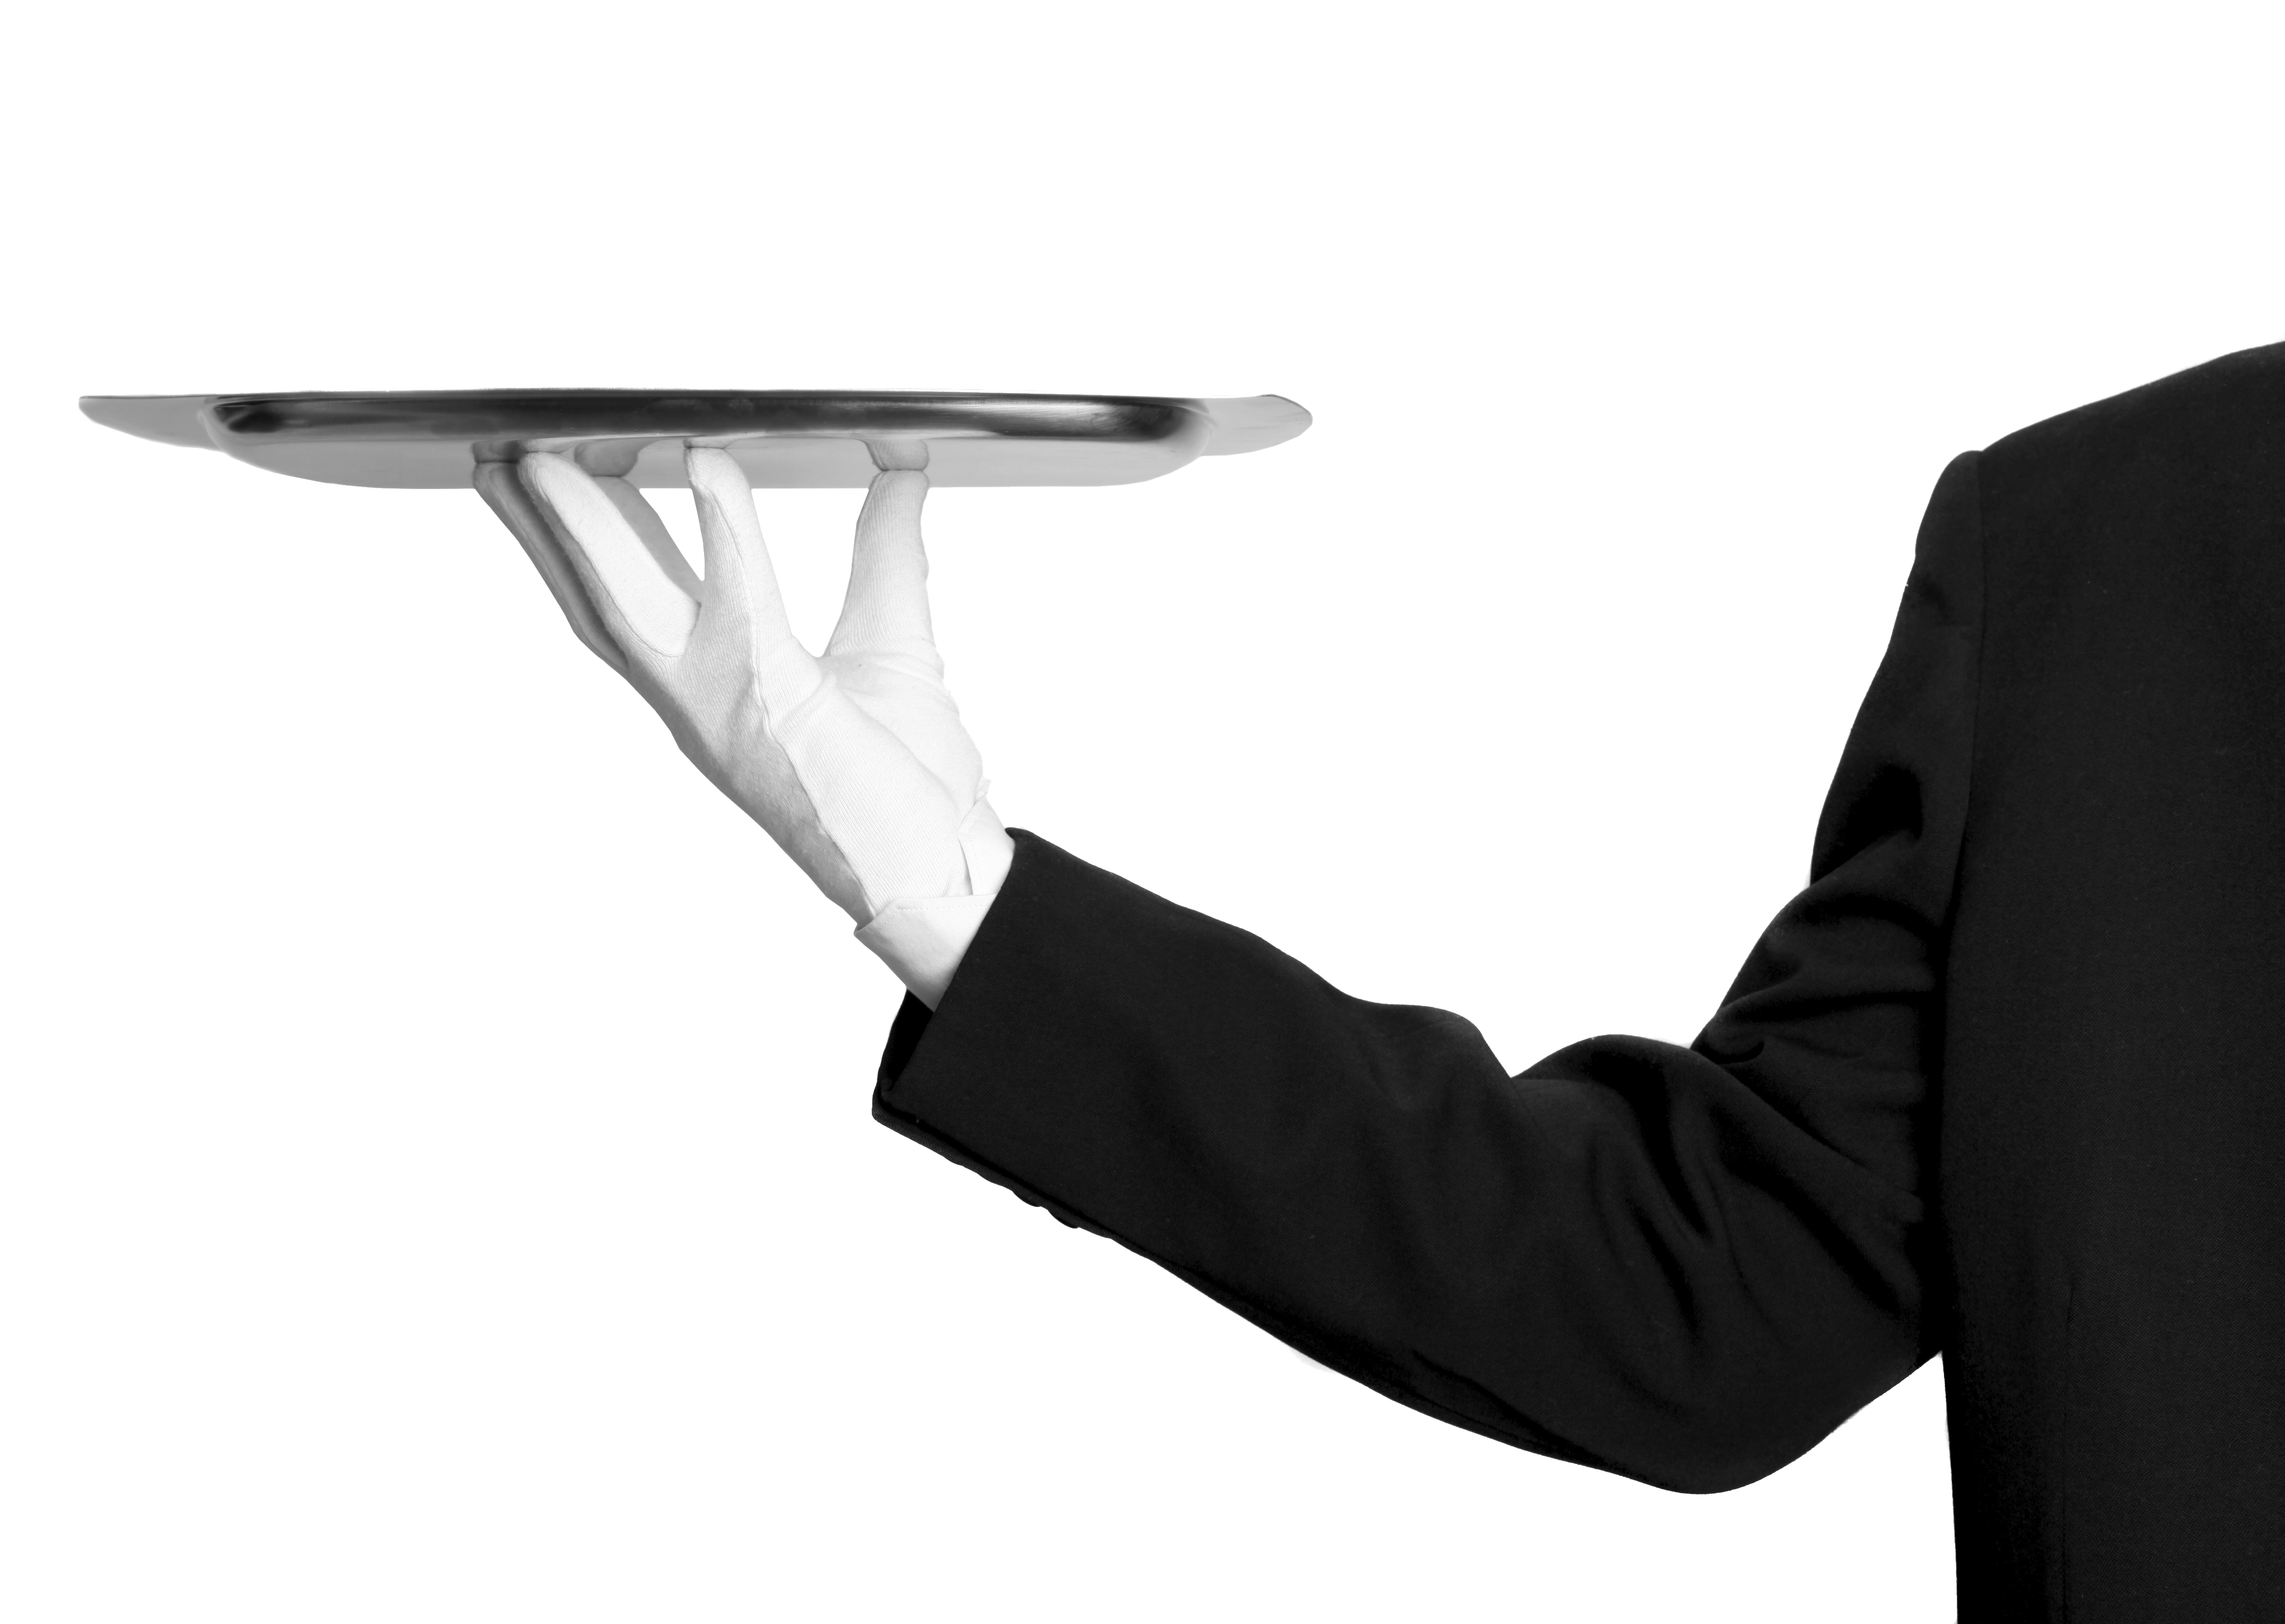 Waitress clipart hand. Waiter png image purepng